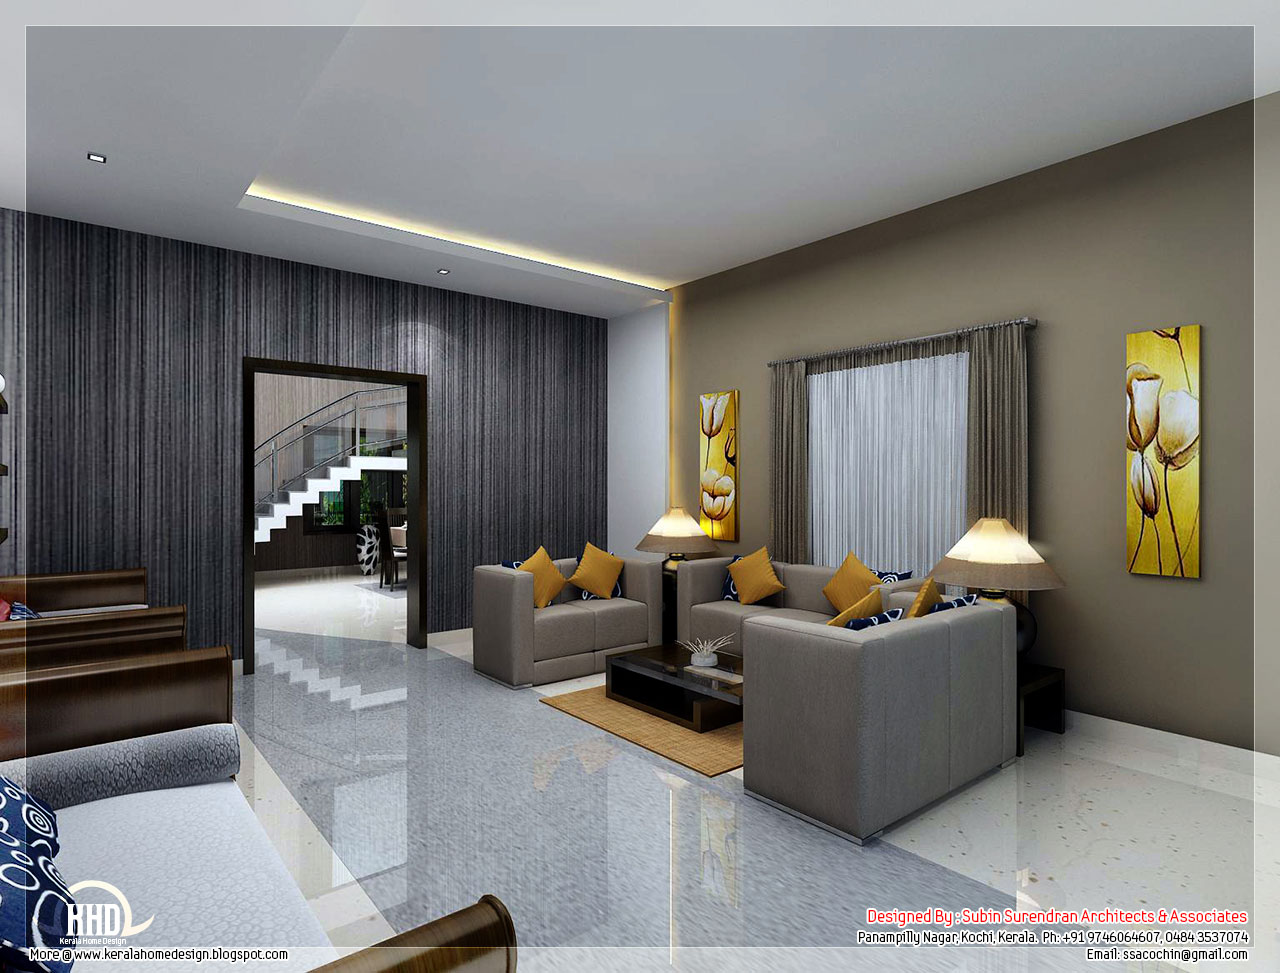 Home Interior Design Ideas Kerala: Awesome 3D Interior Renderings